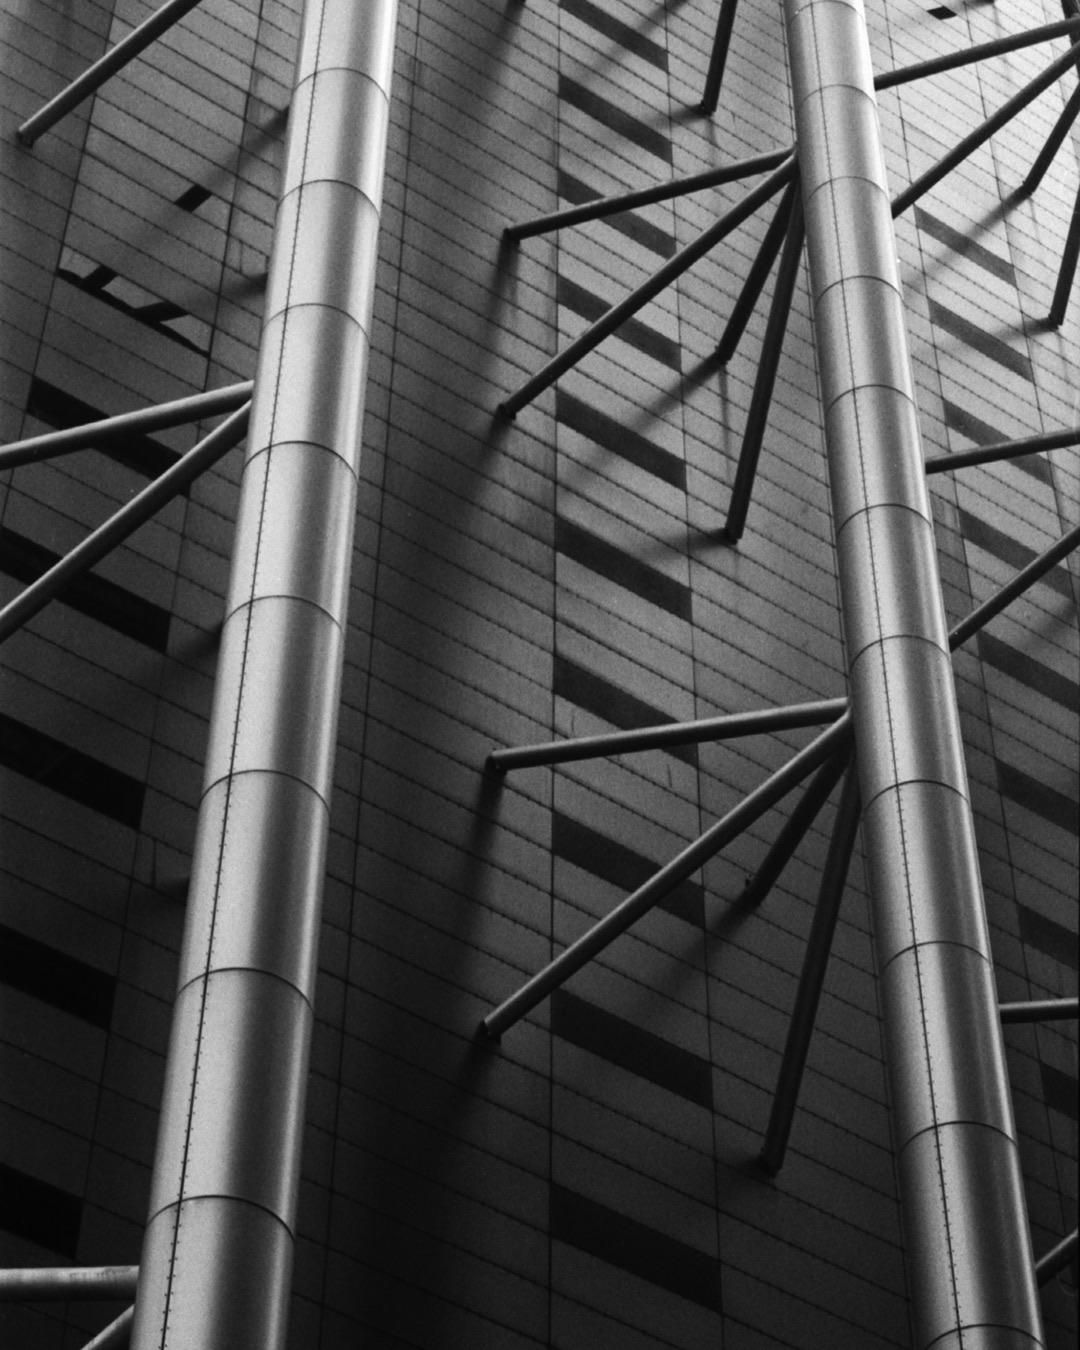 ITAP of a cool futuristic looking building#PHOTO #CAPTURE #NATURE #INCREDIBLE